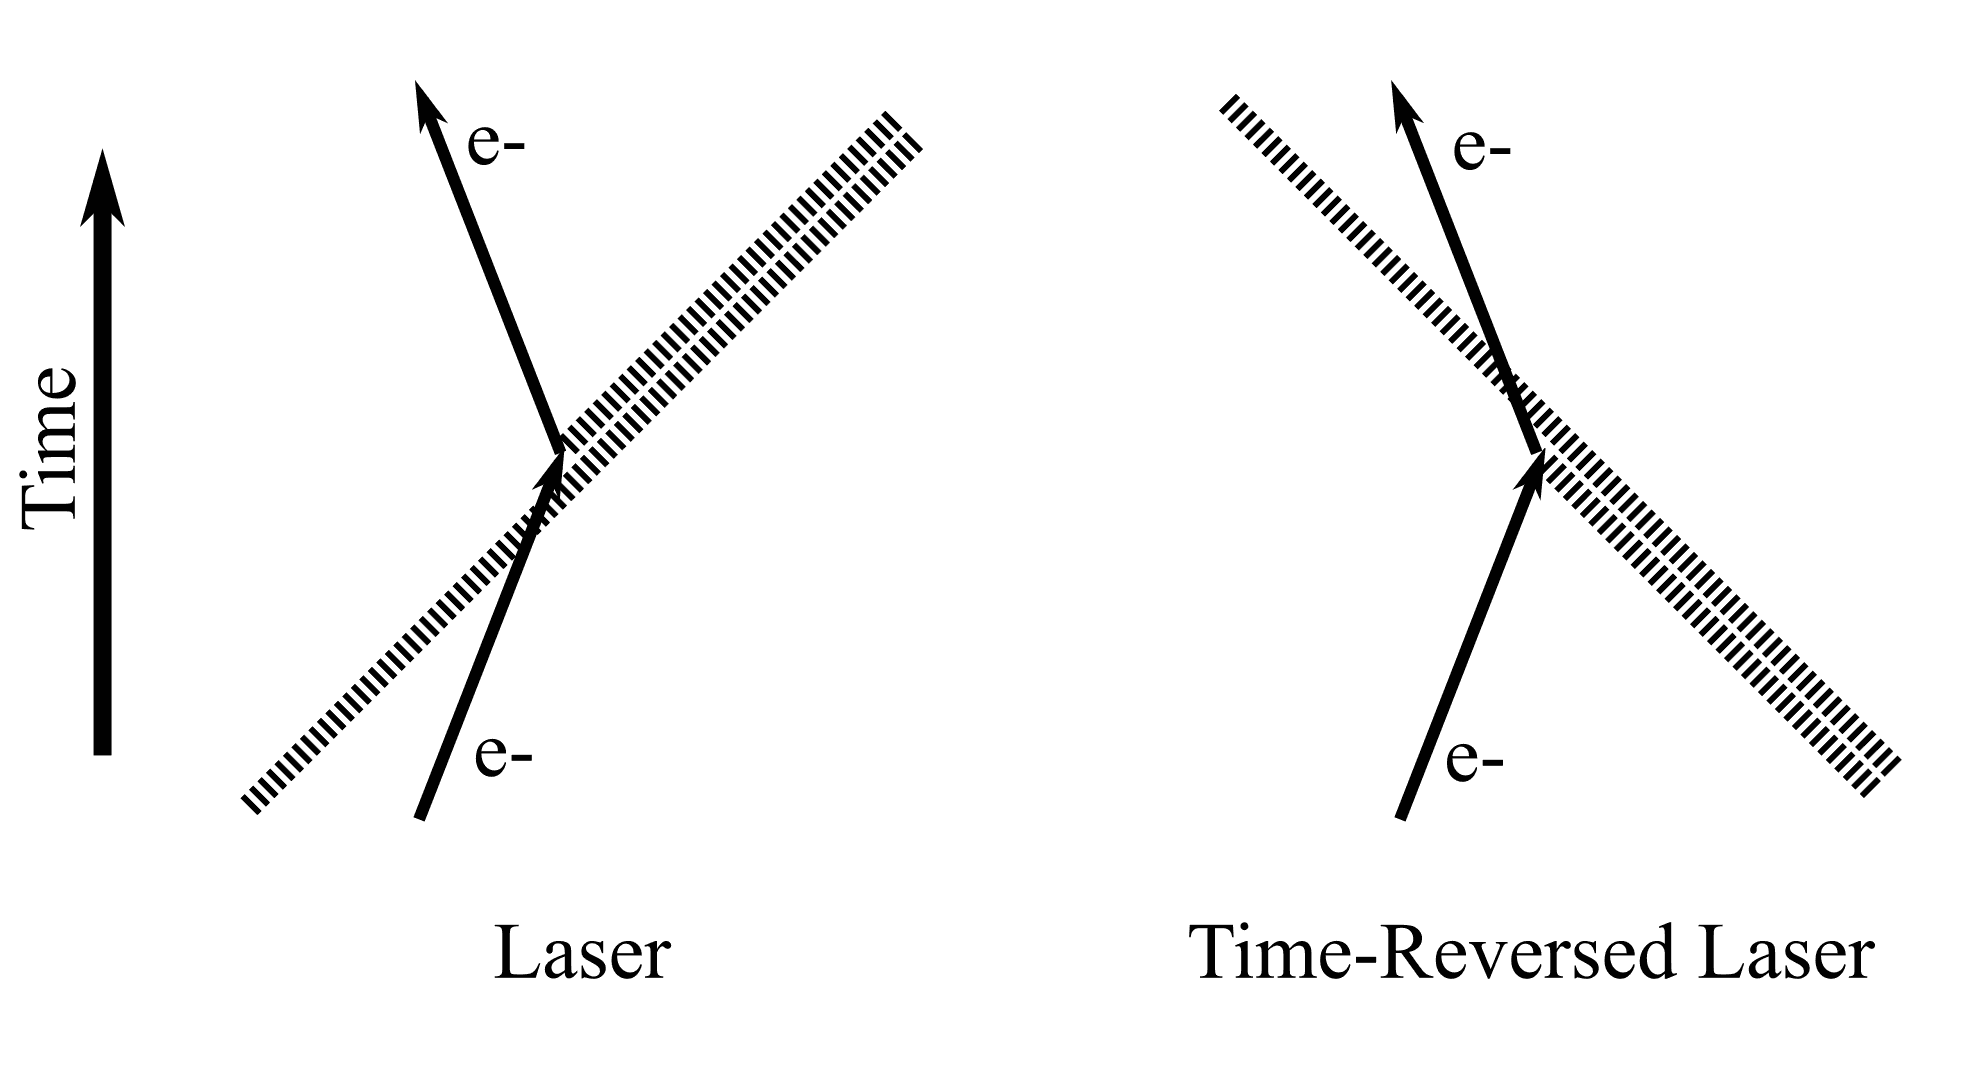 Is The Time Reversed Laser Really A Laser